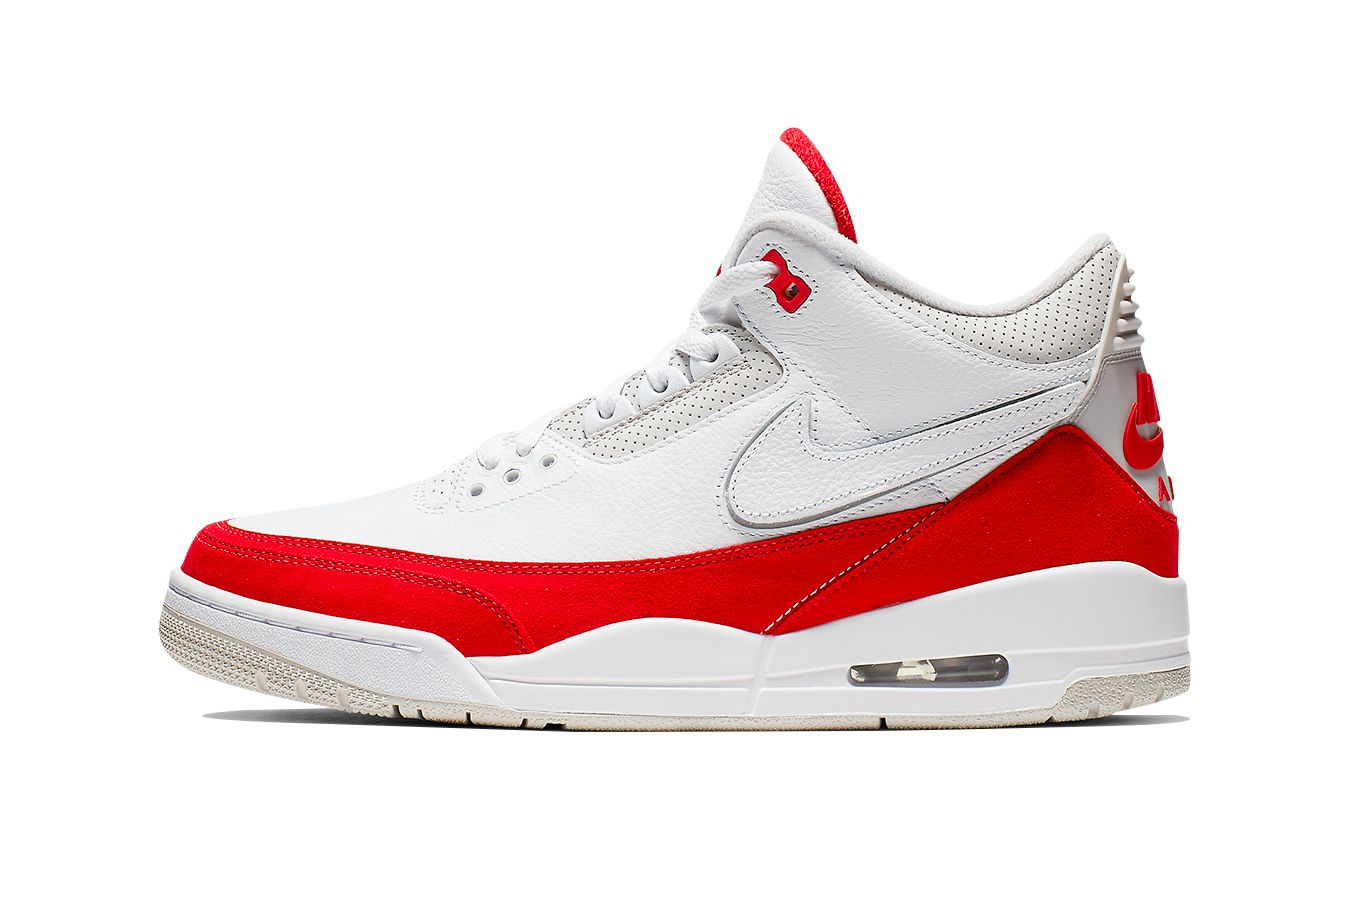 edef55cc9cd This Air Jordan 3 Tinker